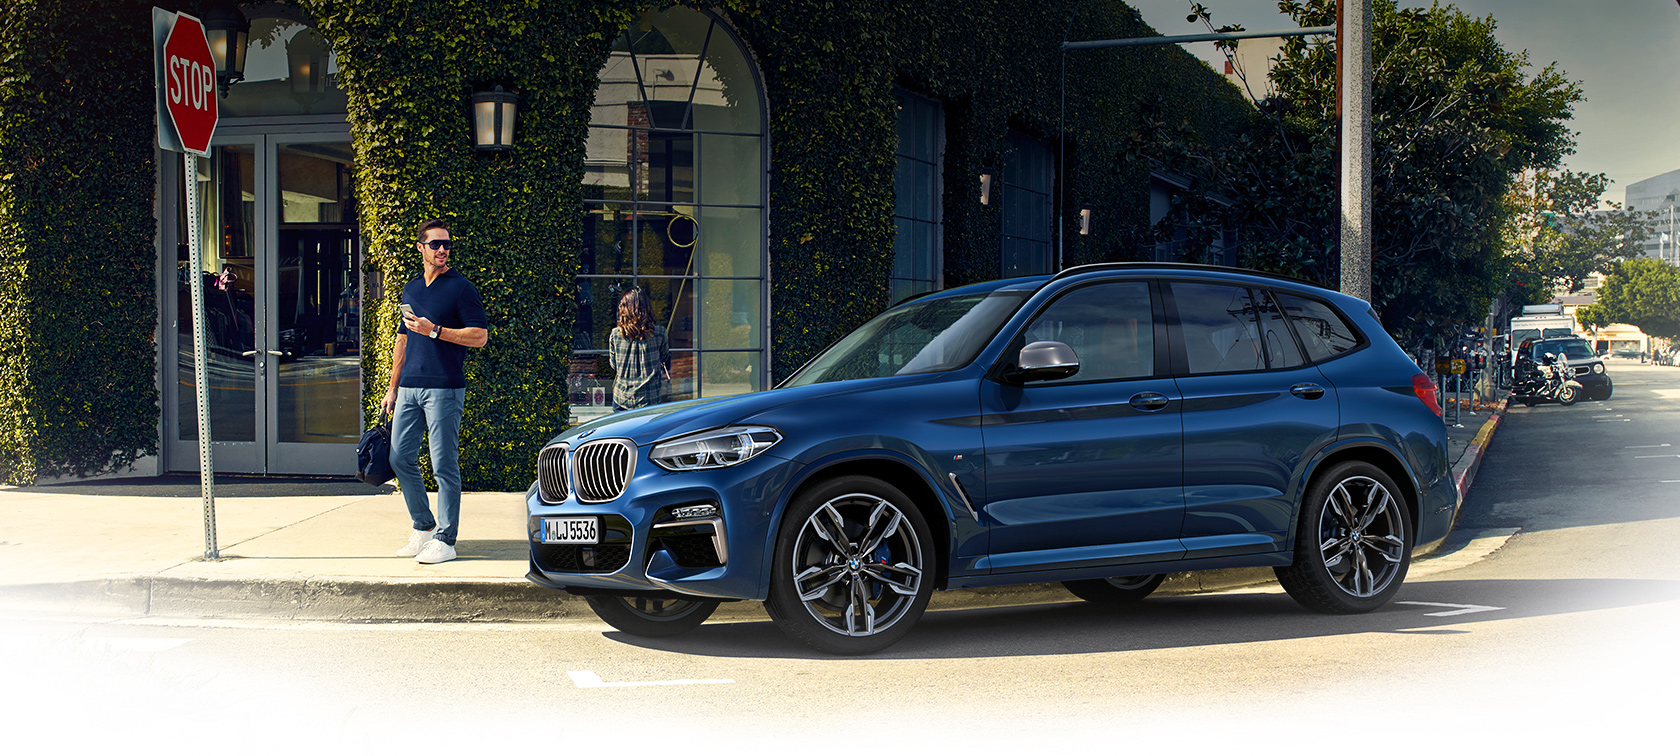 BMW X Series X3: automatic key closure.